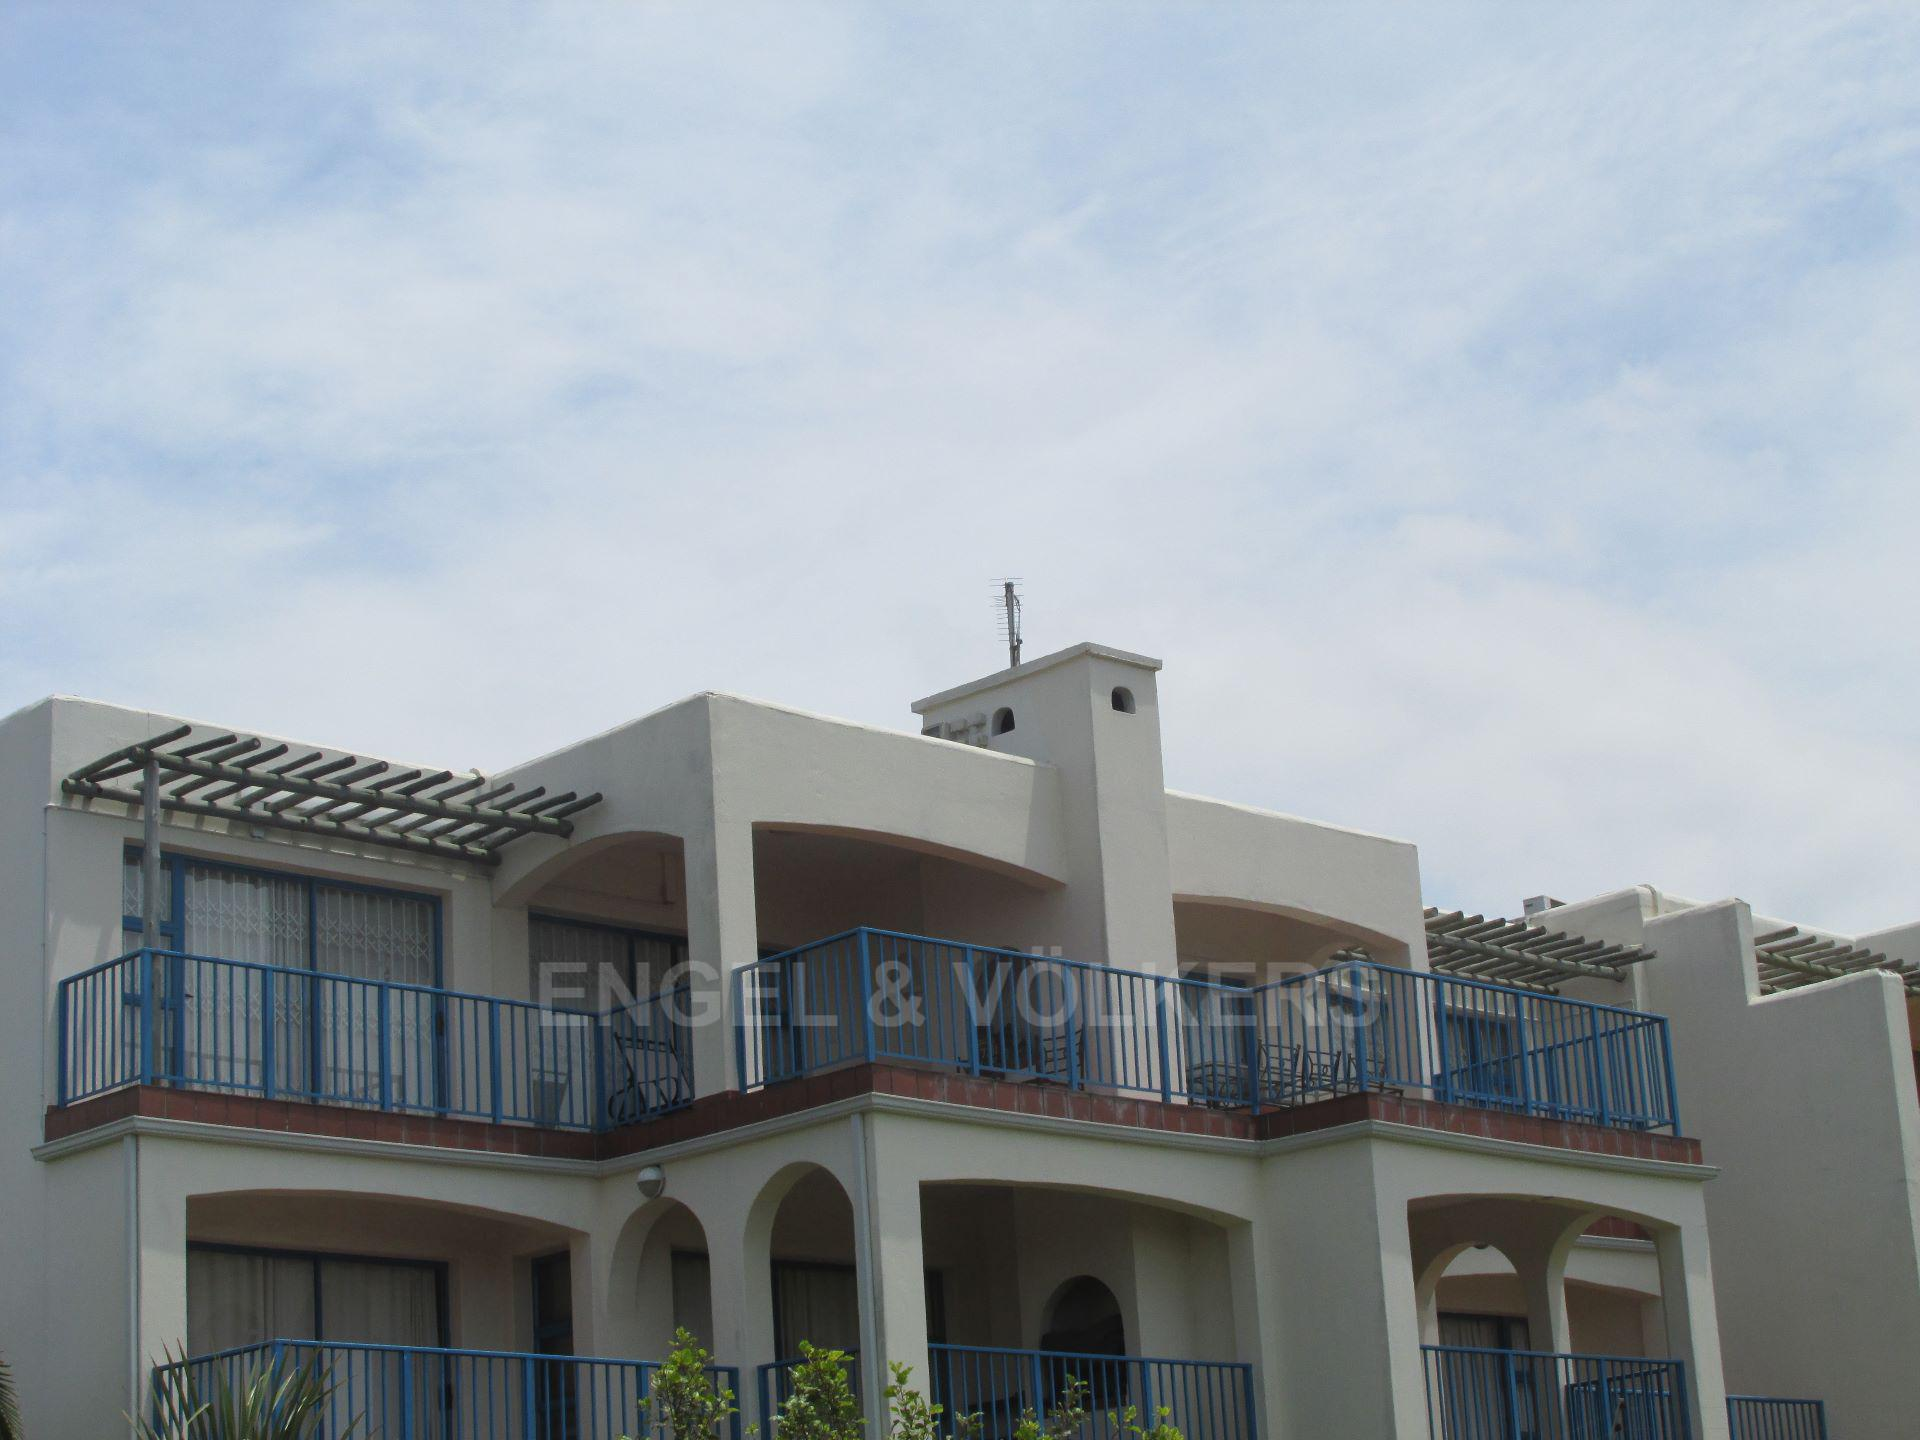 Apartment in Uvongo - 16 Building view.JPG